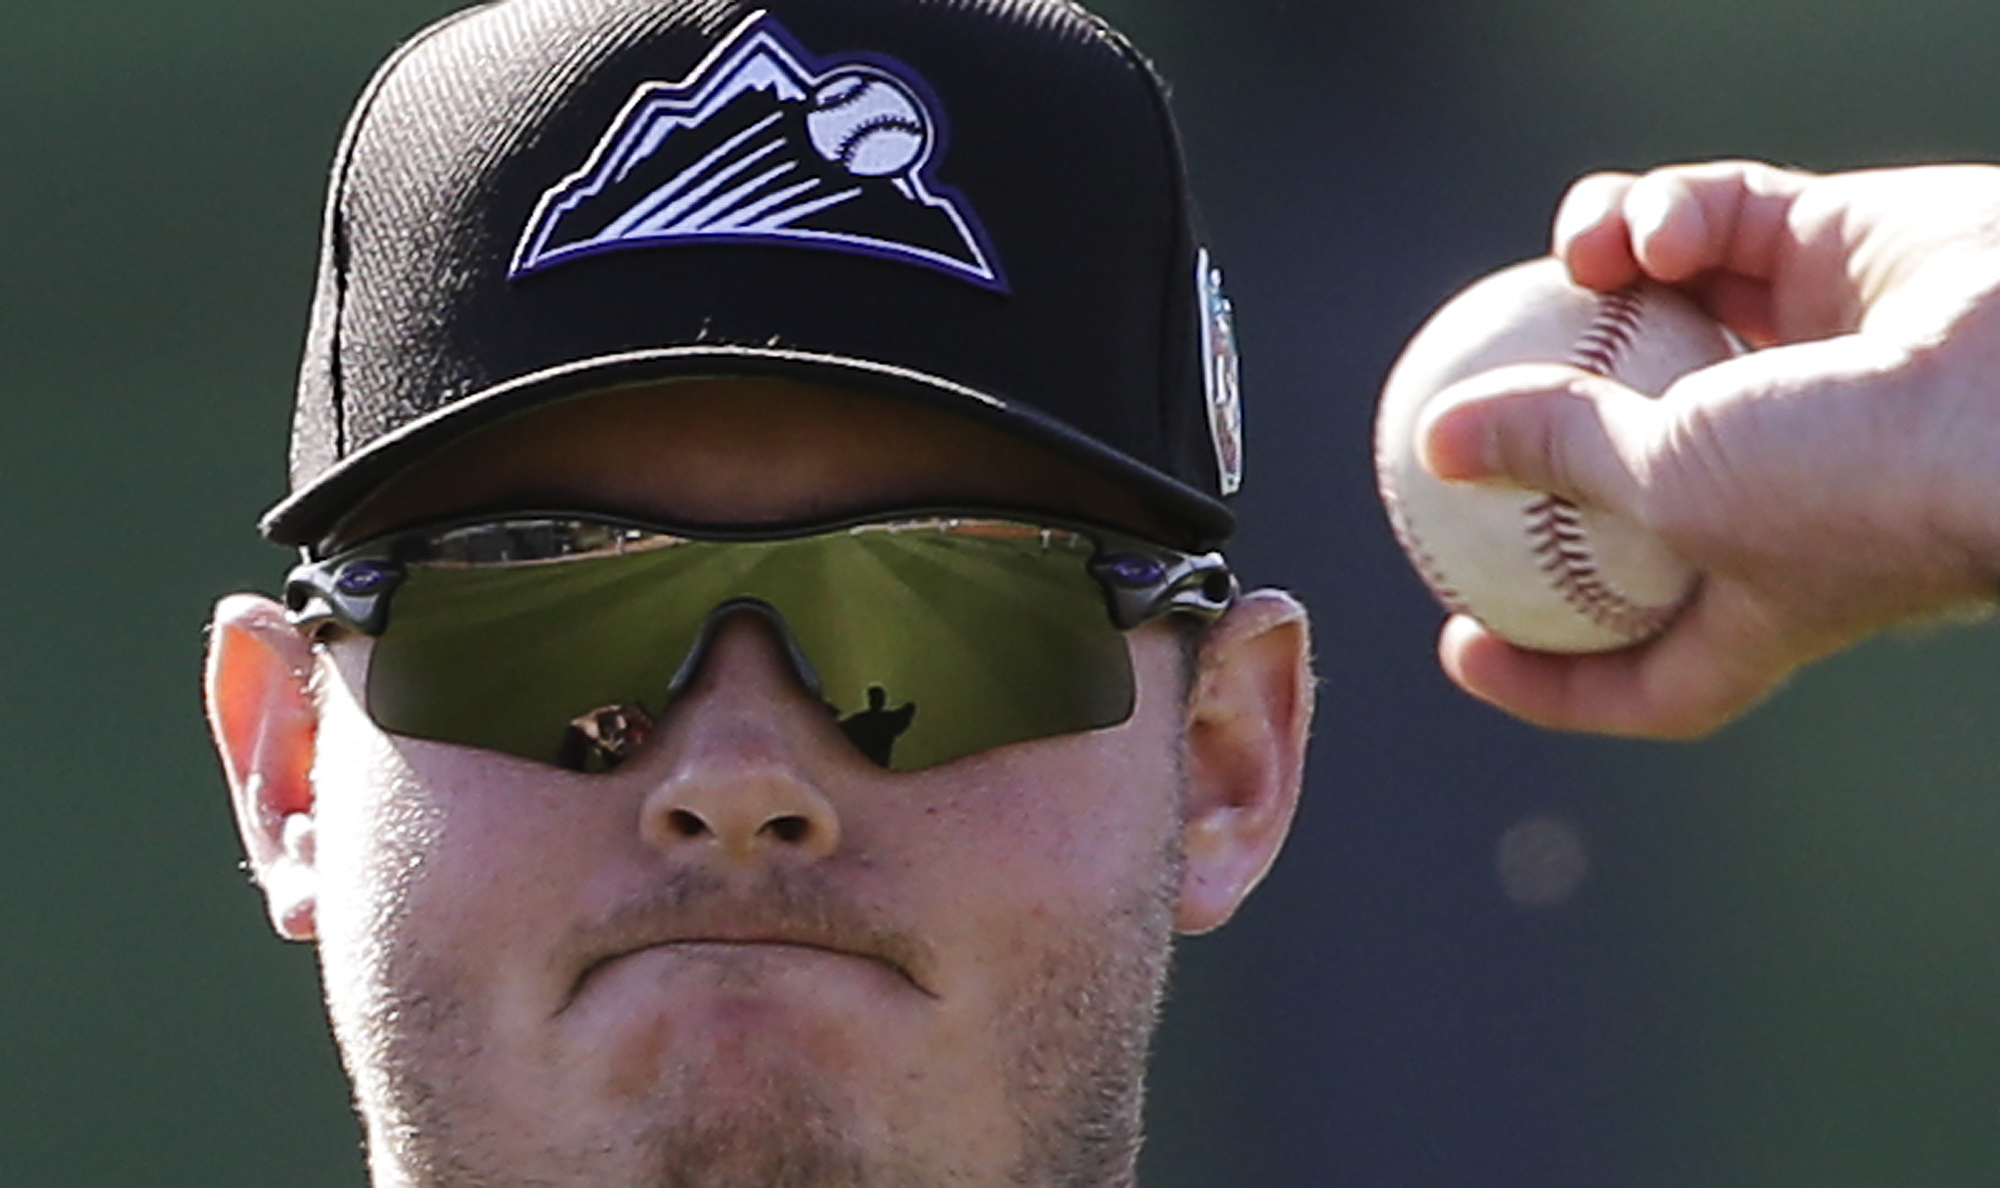 Colorado Rockies starting pitcher Tyler Matzek throws during spring training baseball practice in Scottsdale, Ariz., Monday, Feb. 22, 2016. (AP Photo/Chris Carlson)